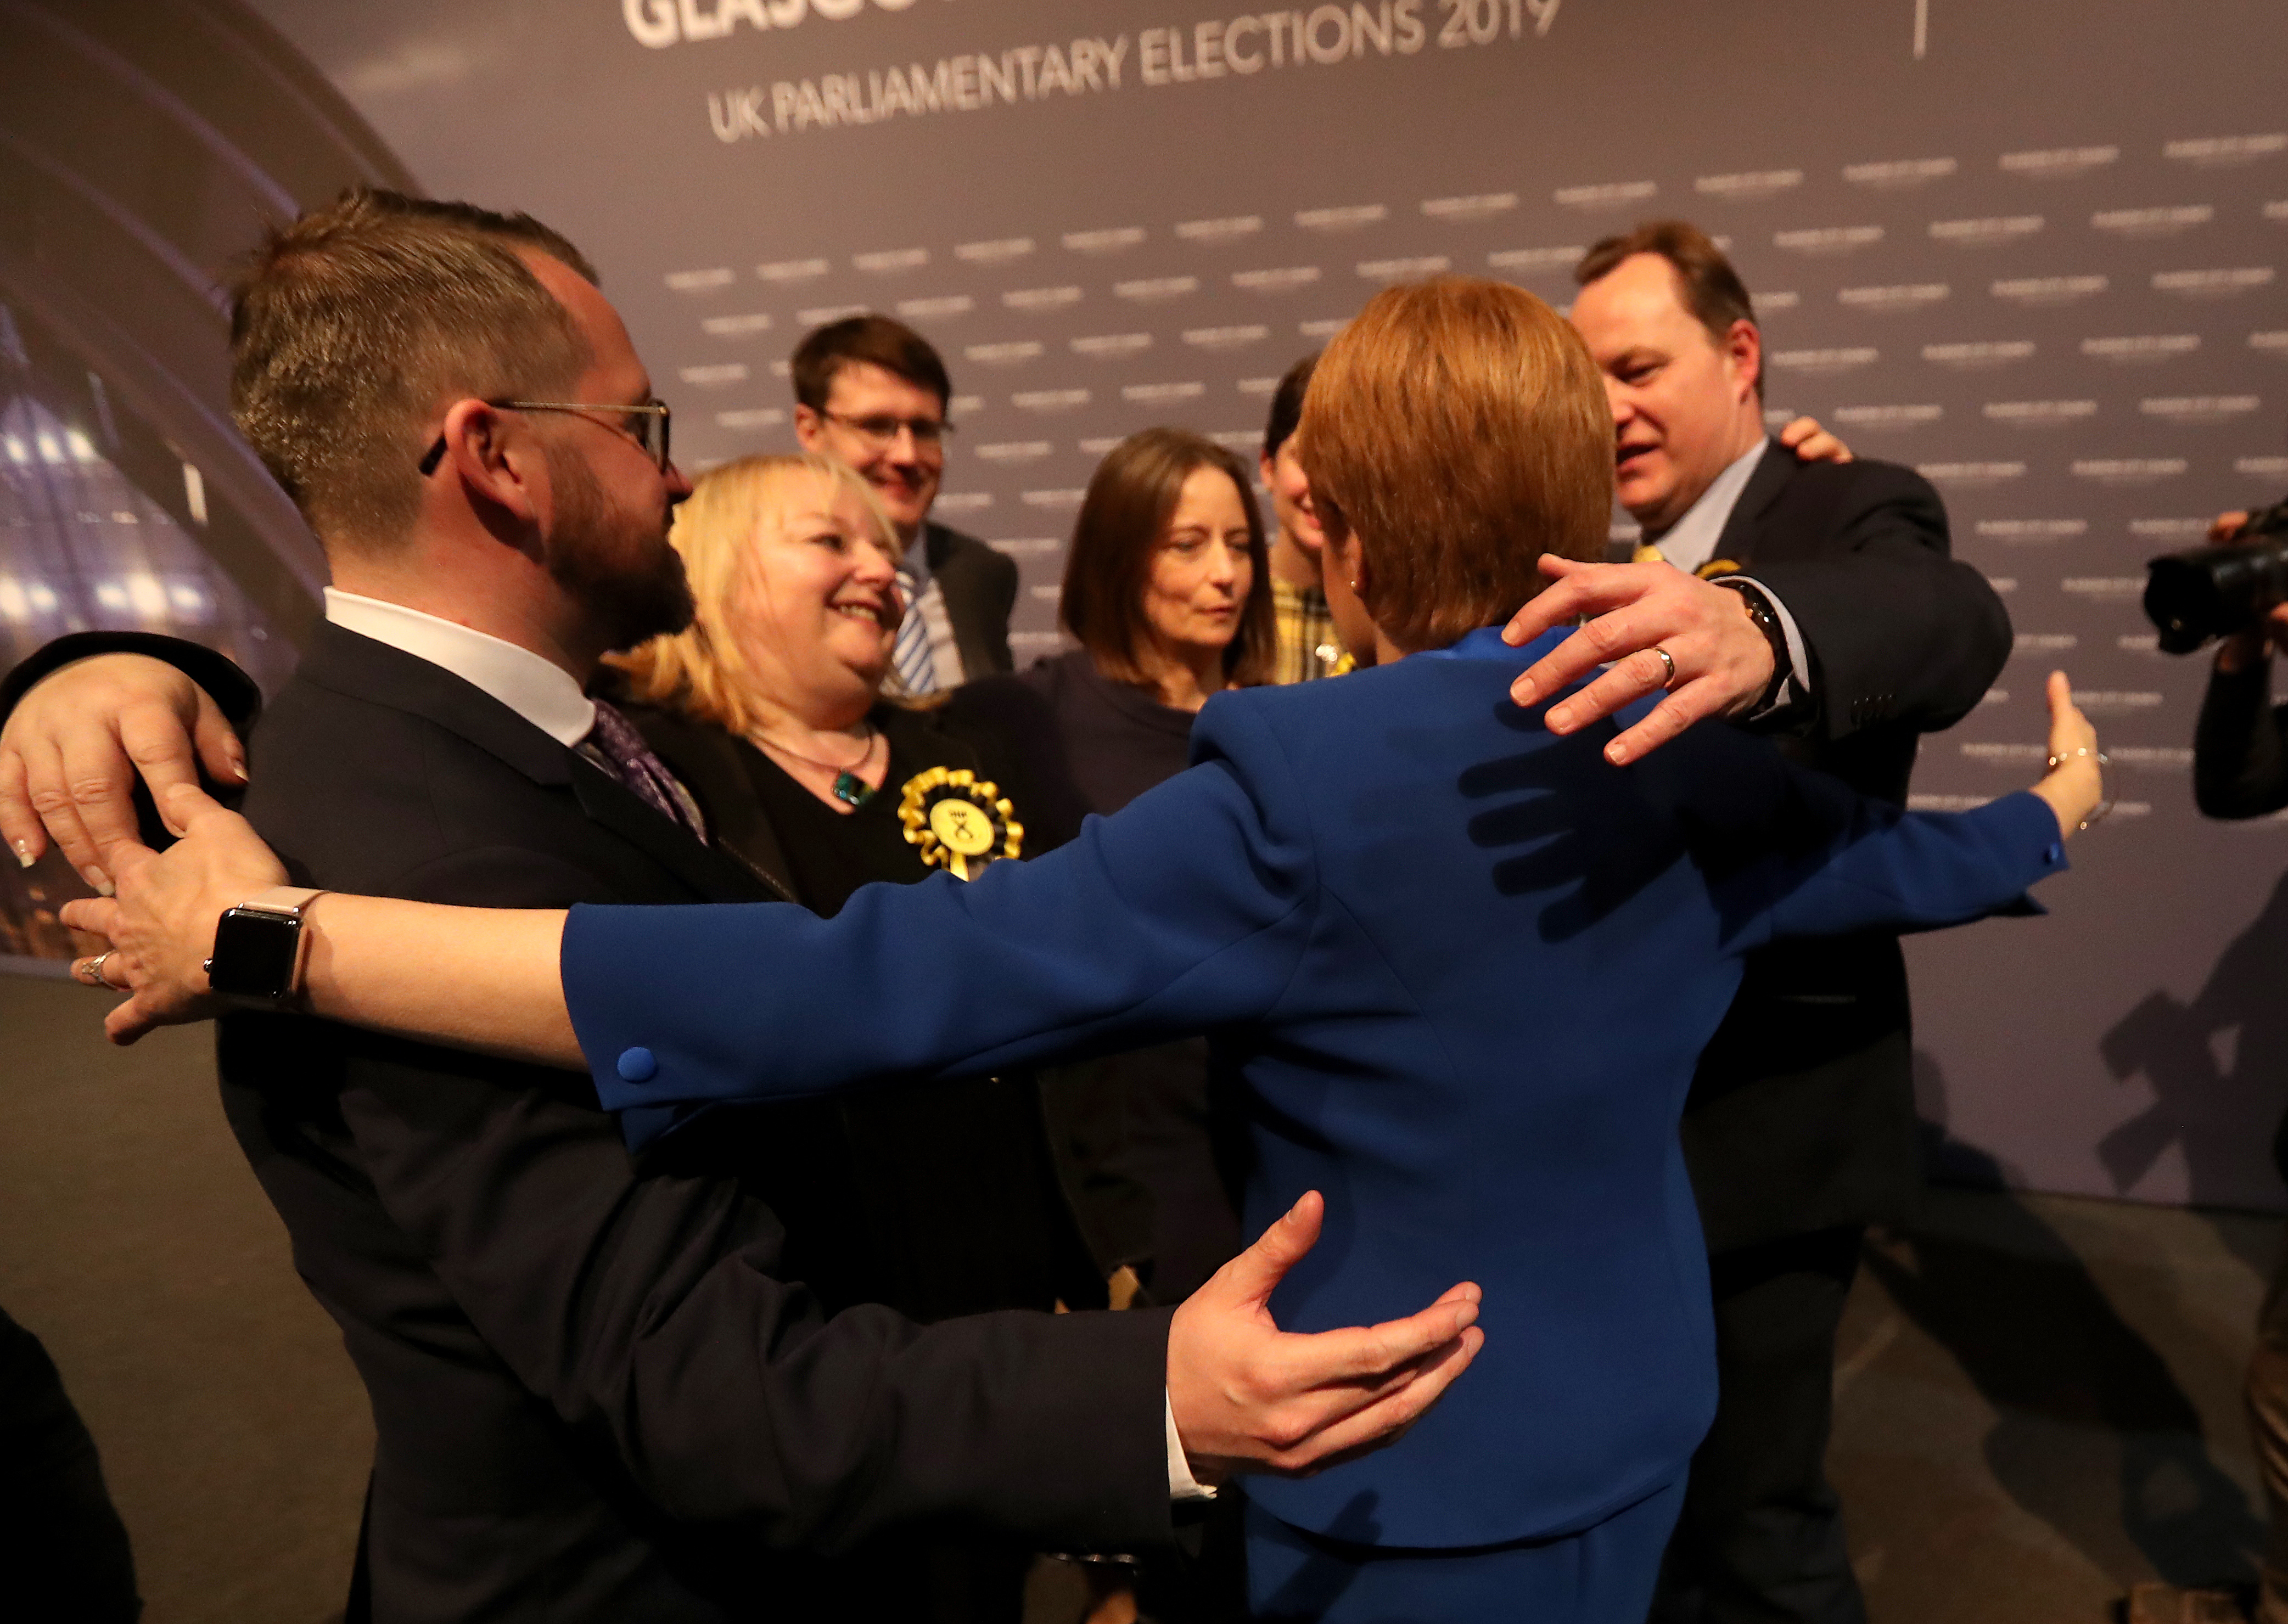 First Minister Nicola Sturgeon hugs her newly elected MPs at the SEC Centre in Glasgow after counting for the 2019 General Election. (Photo by Andrew Milligan/PA Images via Getty Images)